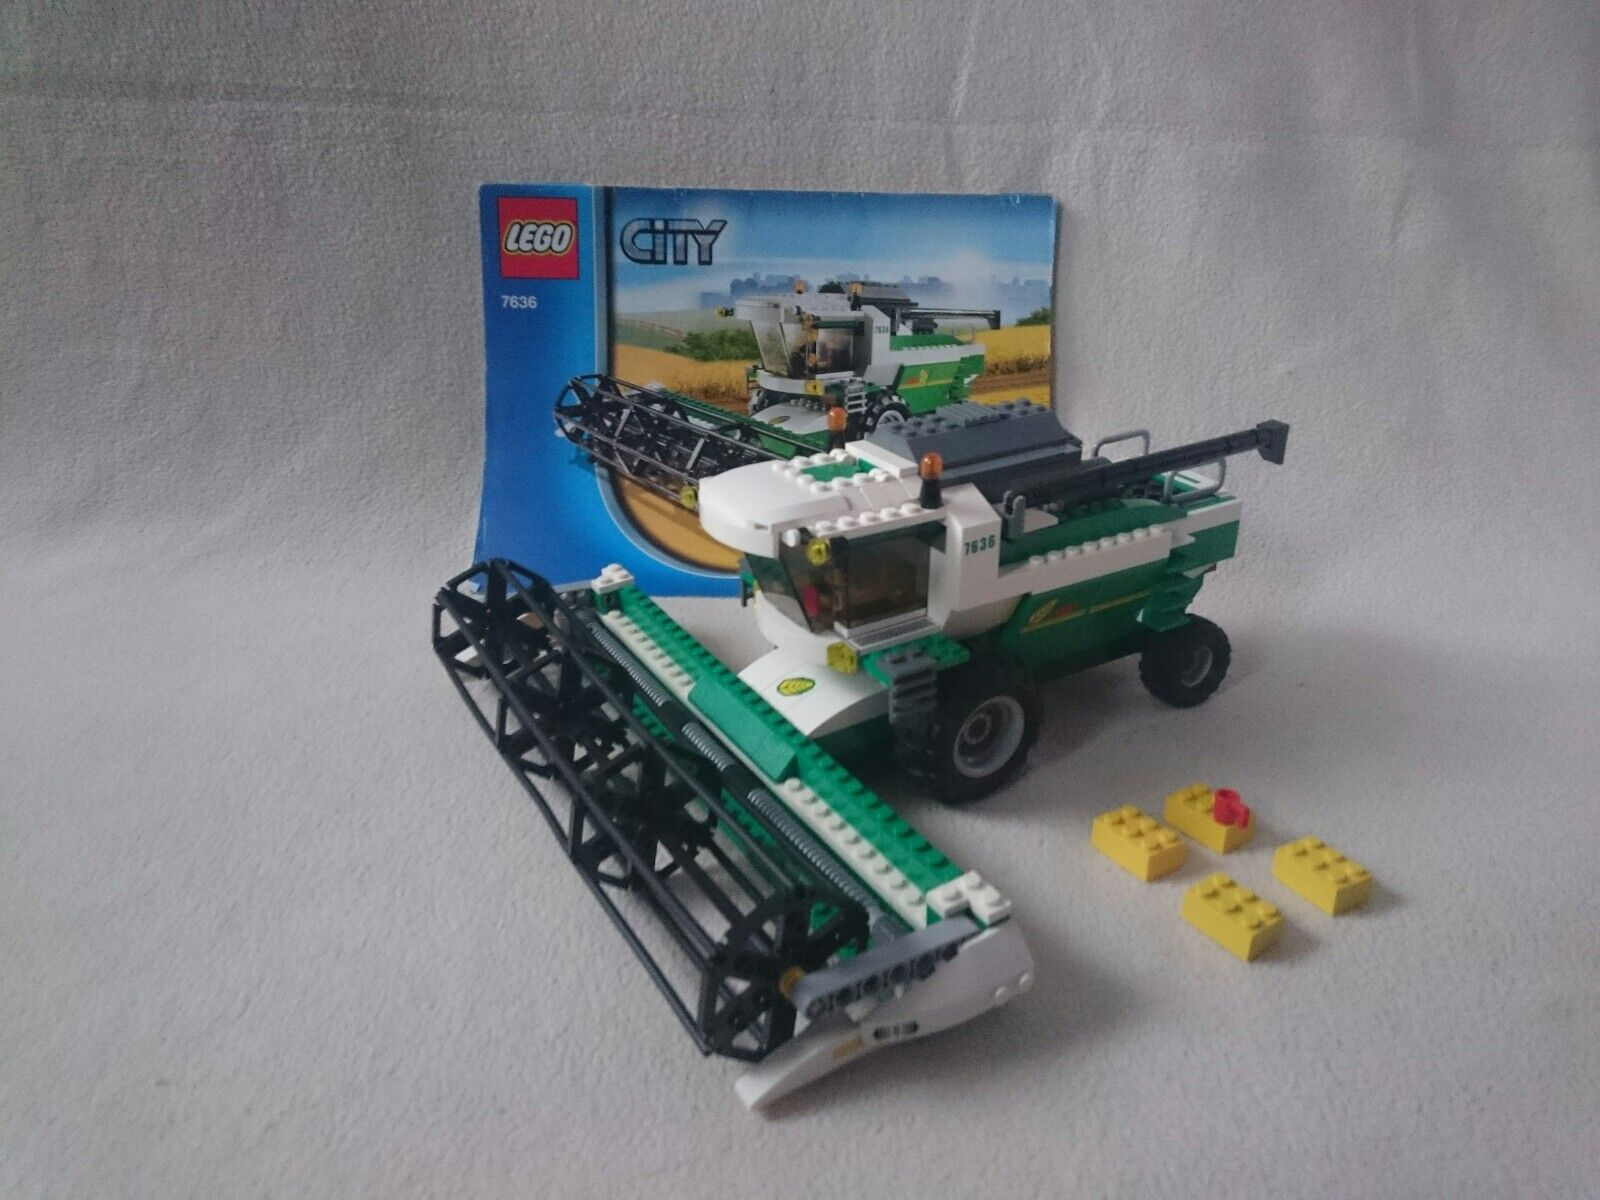 LEGO CITY 7636. Combine Harvester. 100 % Complete with Instructions